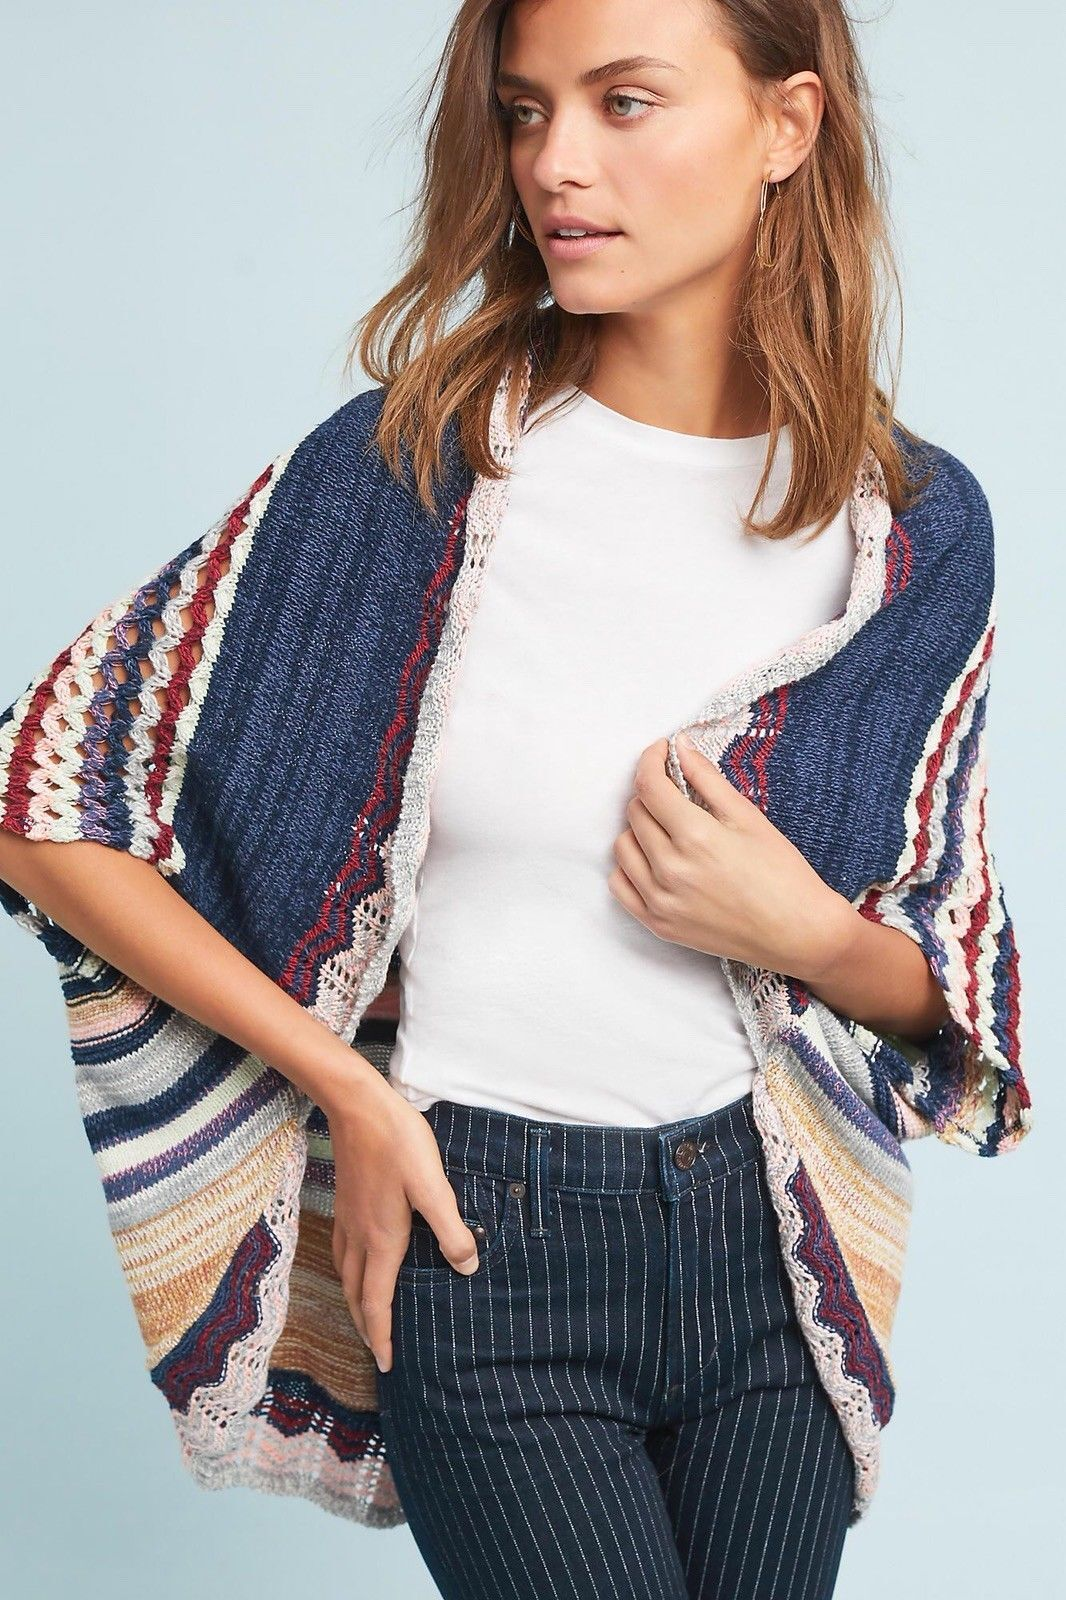 Anthropologie Kearny Crocheted Cardigan by Moth New NWT Various Größes